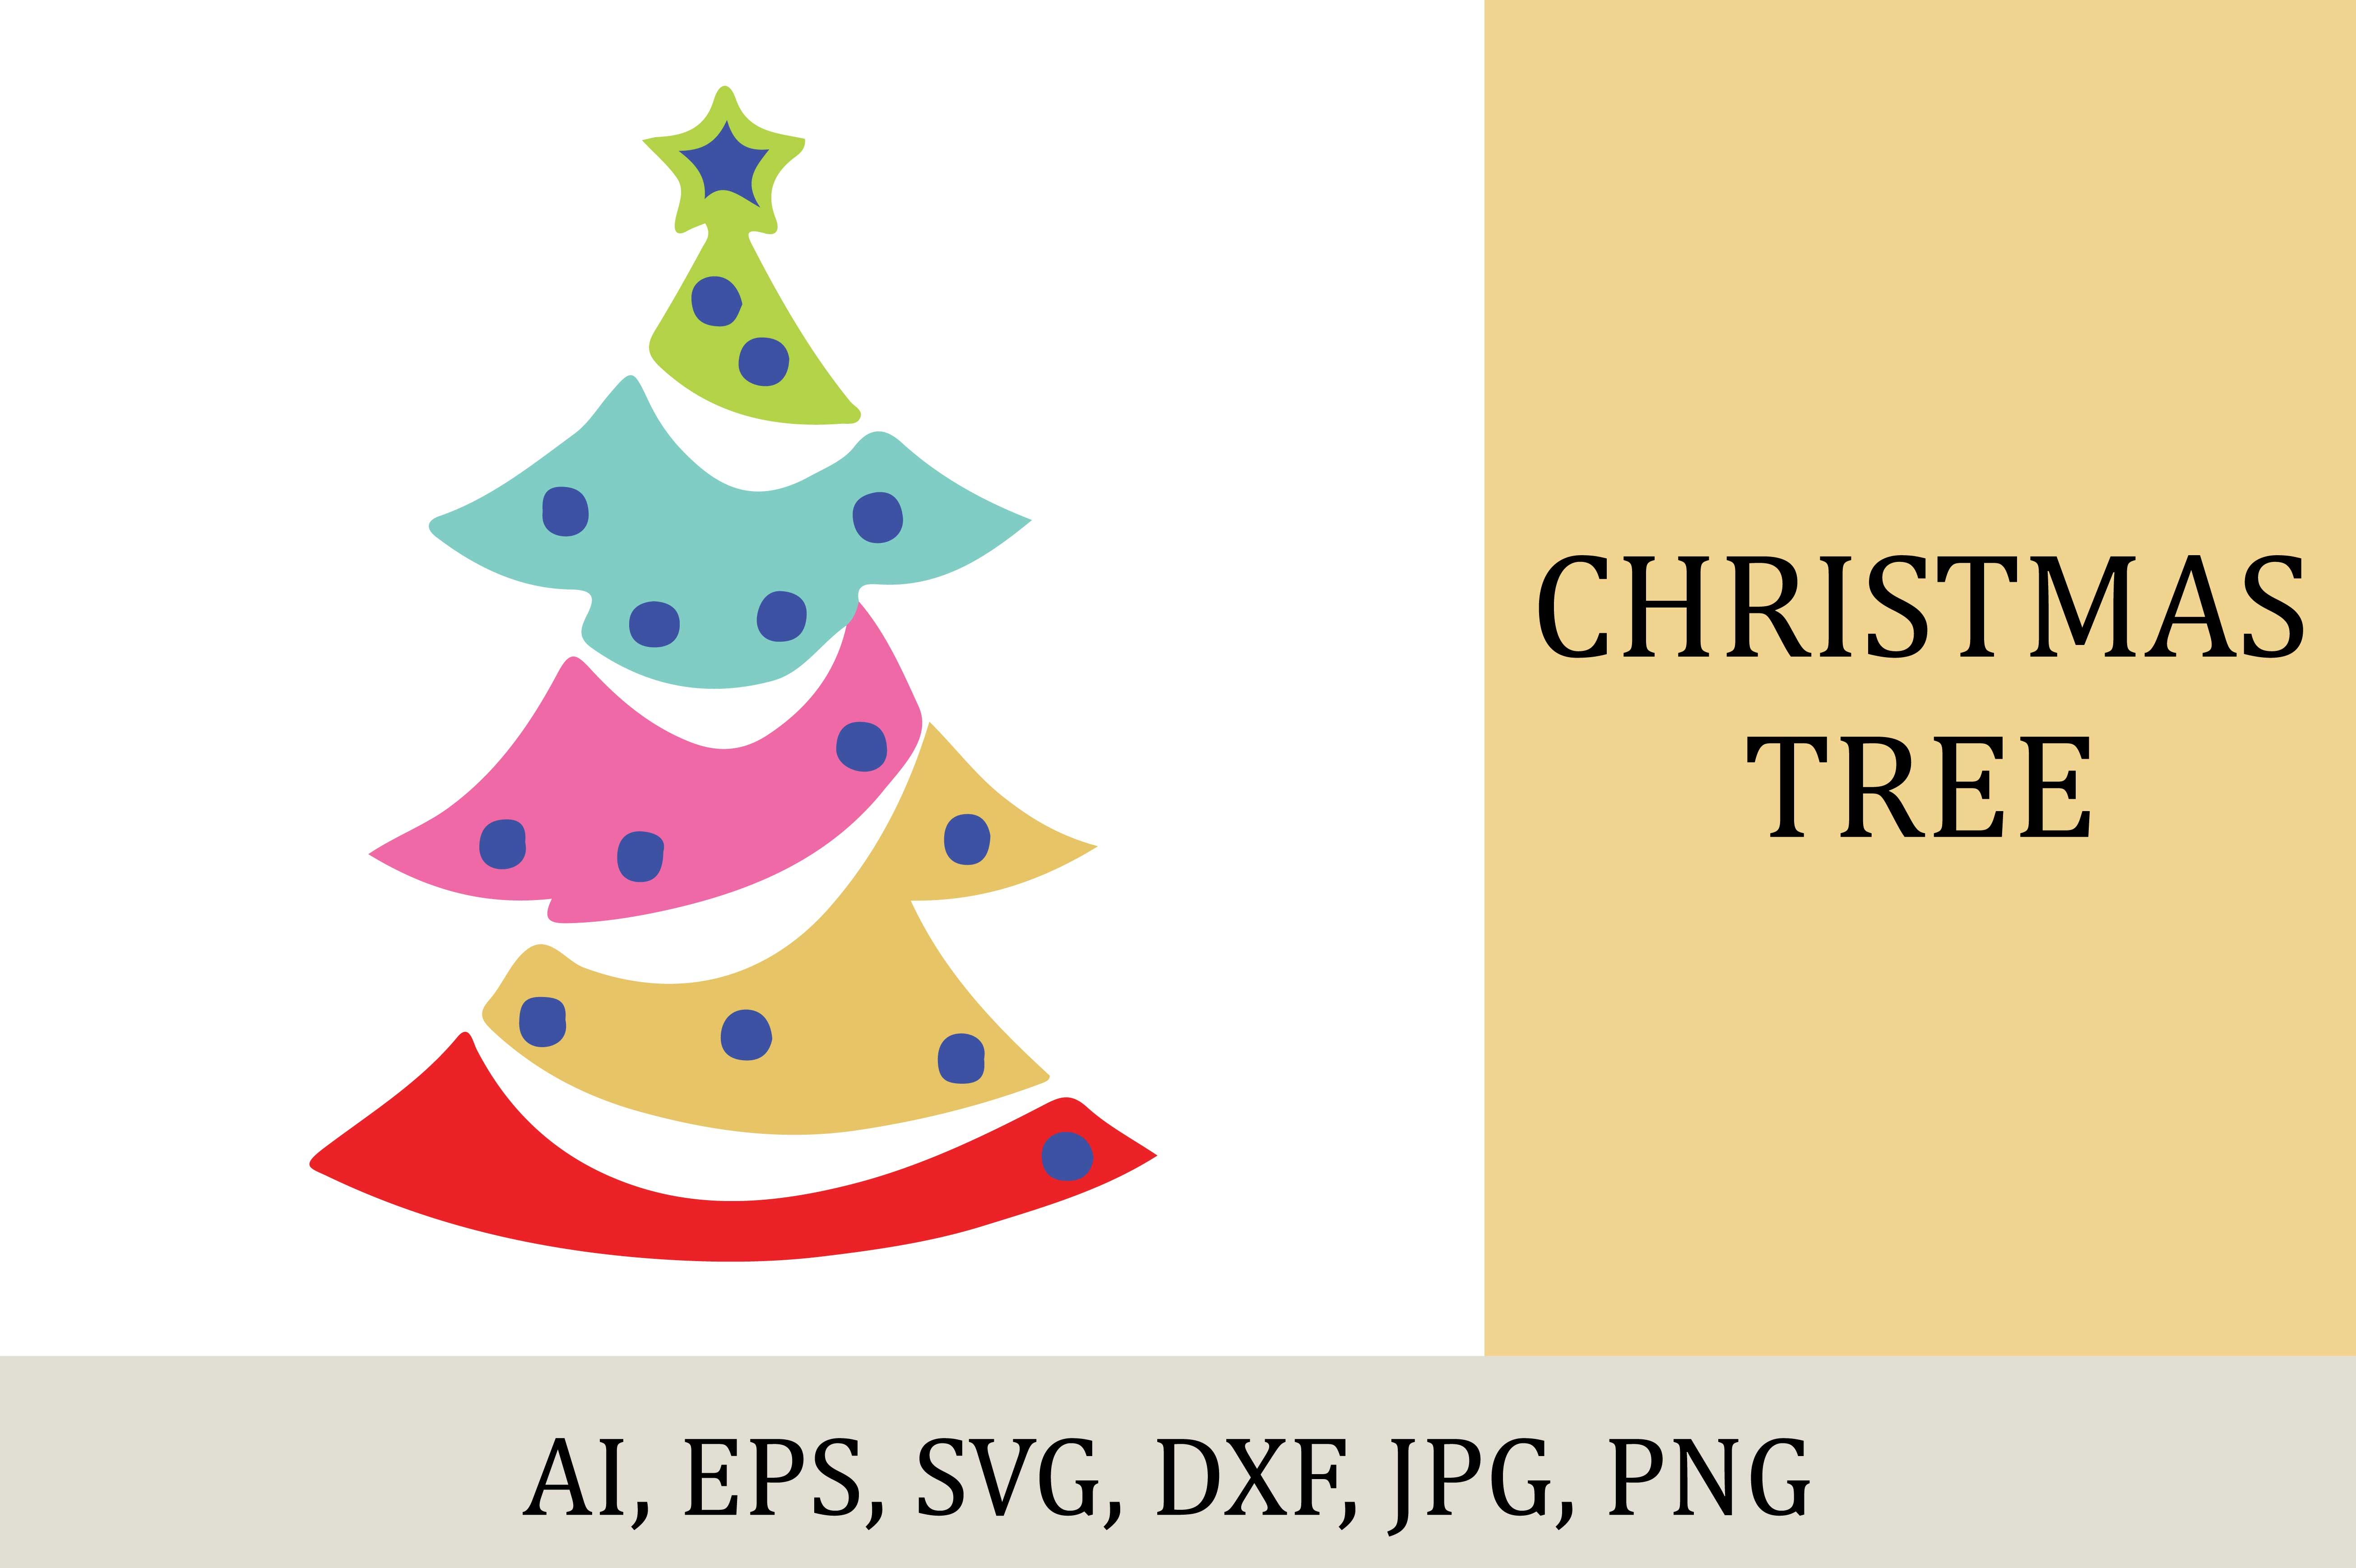 Download Free Christmas Graphic By Themagicboxart Creative Fabrica for Cricut Explore, Silhouette and other cutting machines.